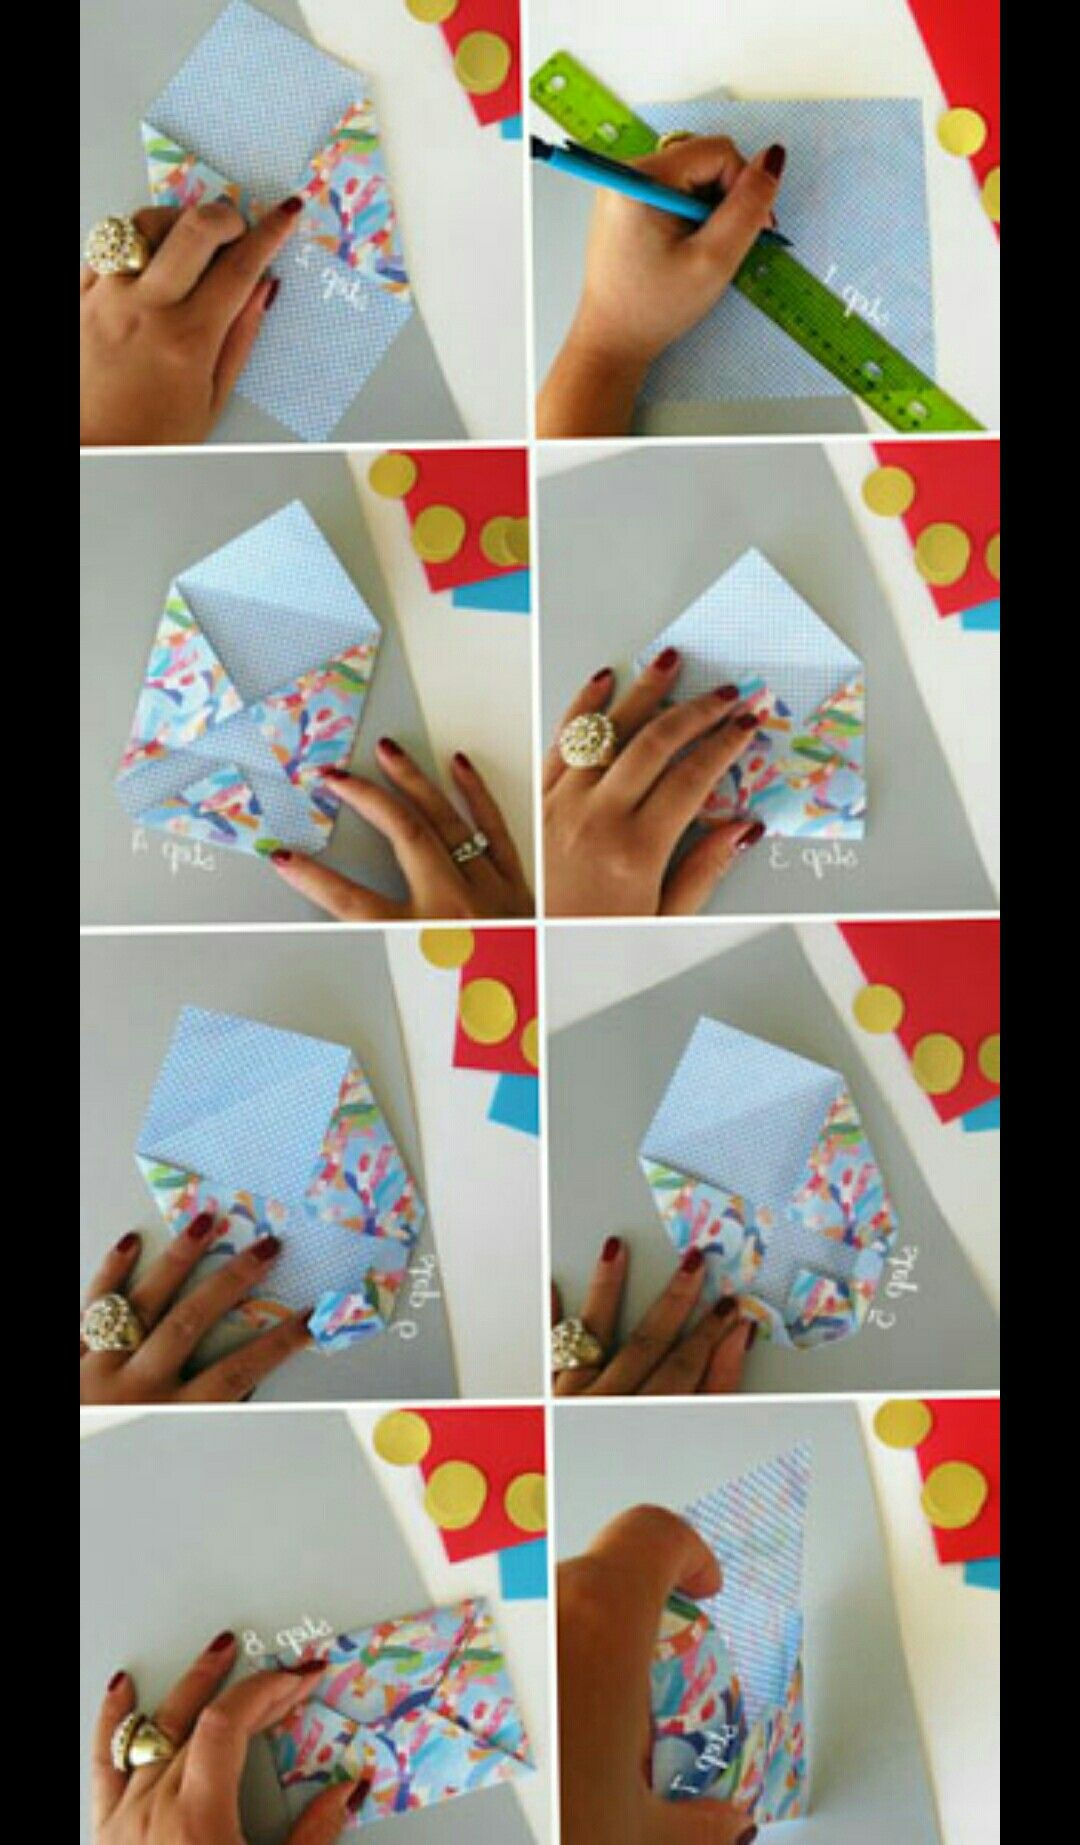 Pin by Caylee W. on Cards Crafts, Gift card envelope